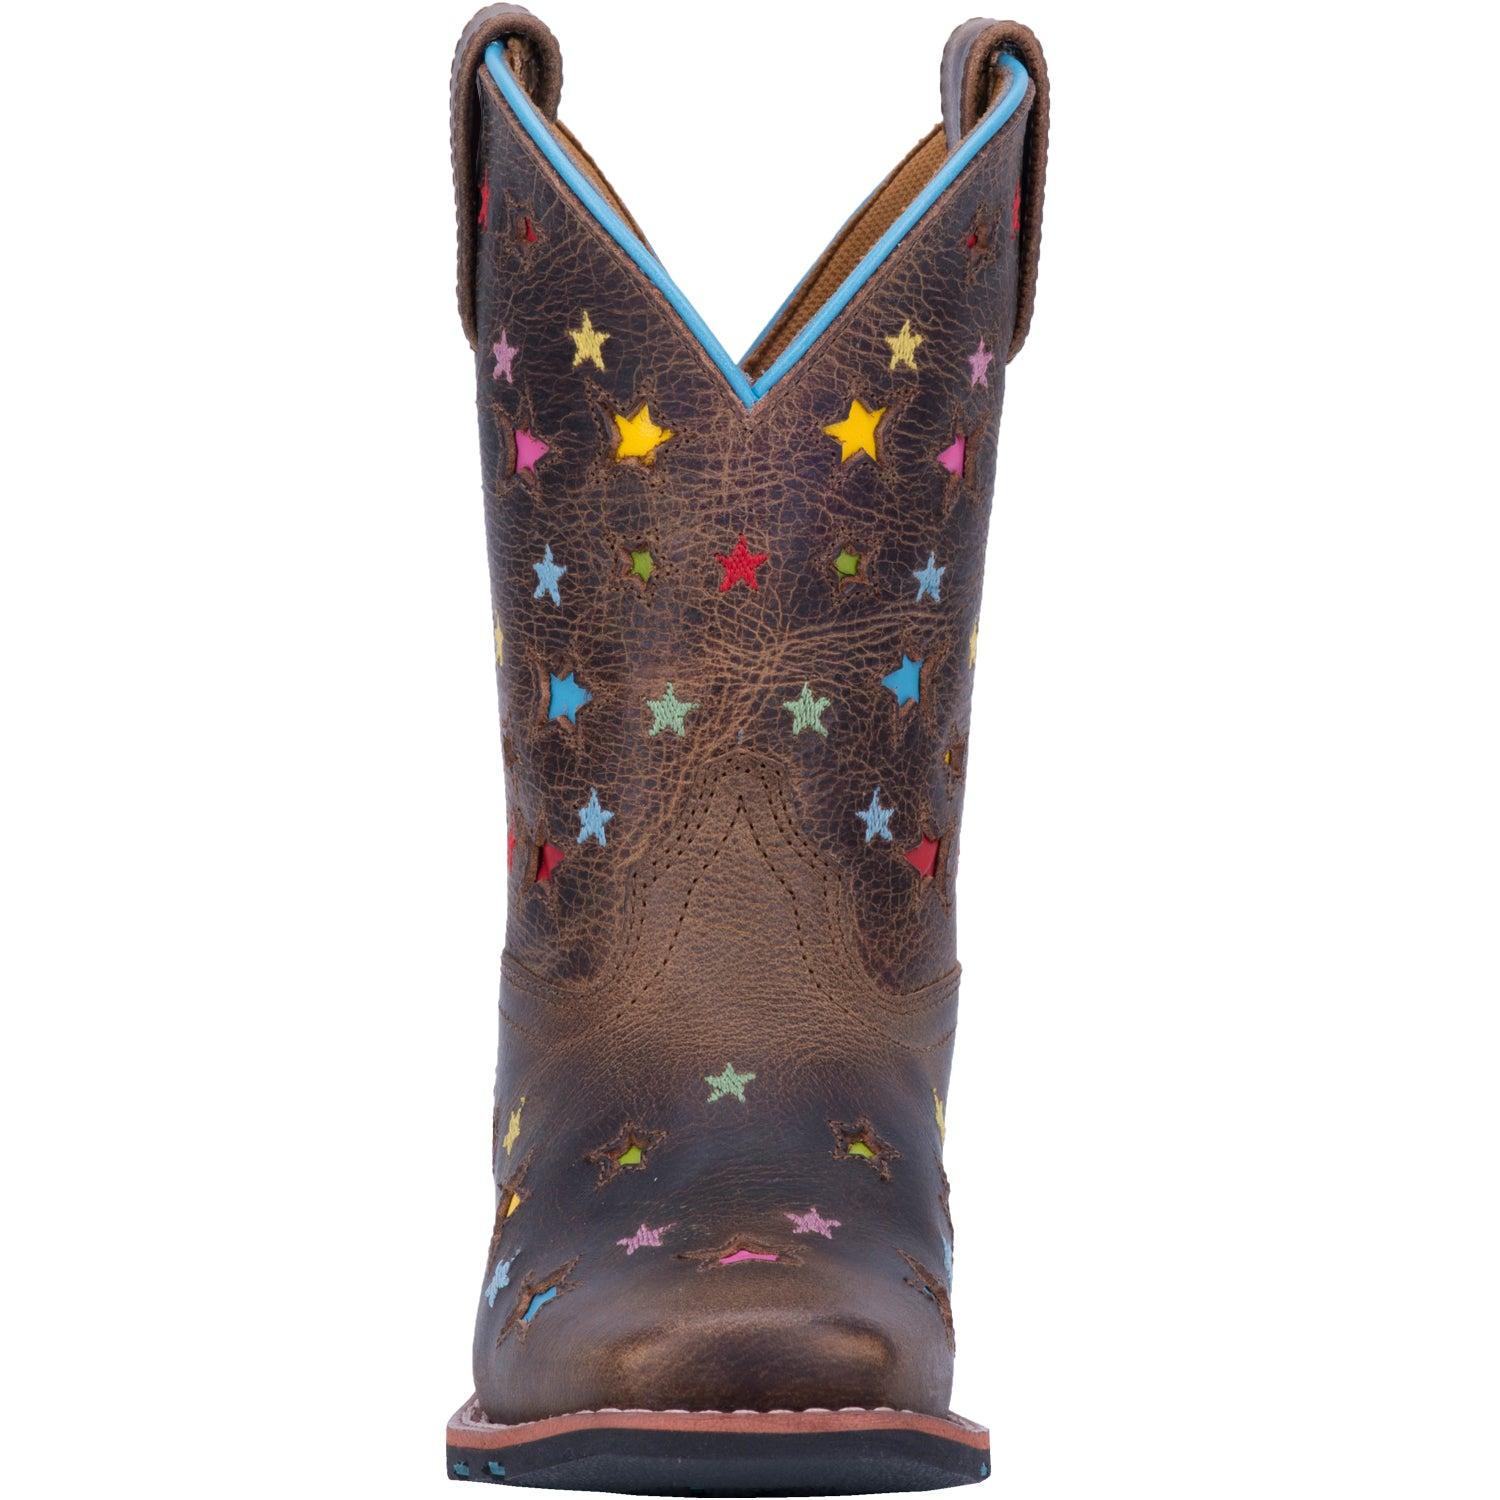 STARLETT LEATHER CHILDREN'S BOOT